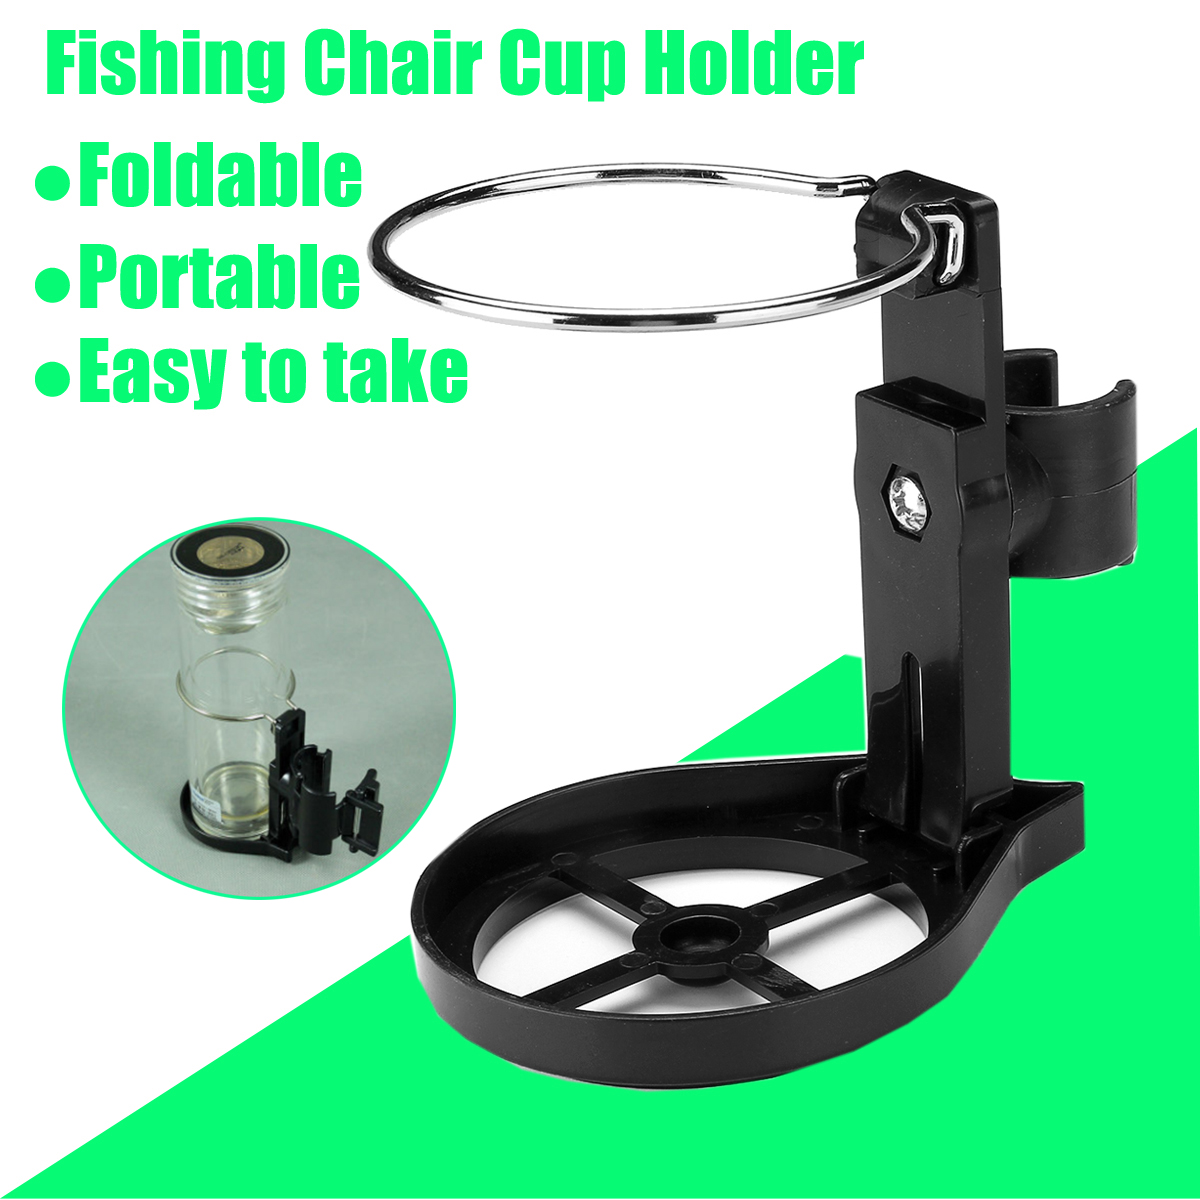 Bathroom Fixtures Cup & Tumbler Holders Sensible Portable Camping Picnic Beach Garden Fishing Couches Chair Side Table Cup Holder